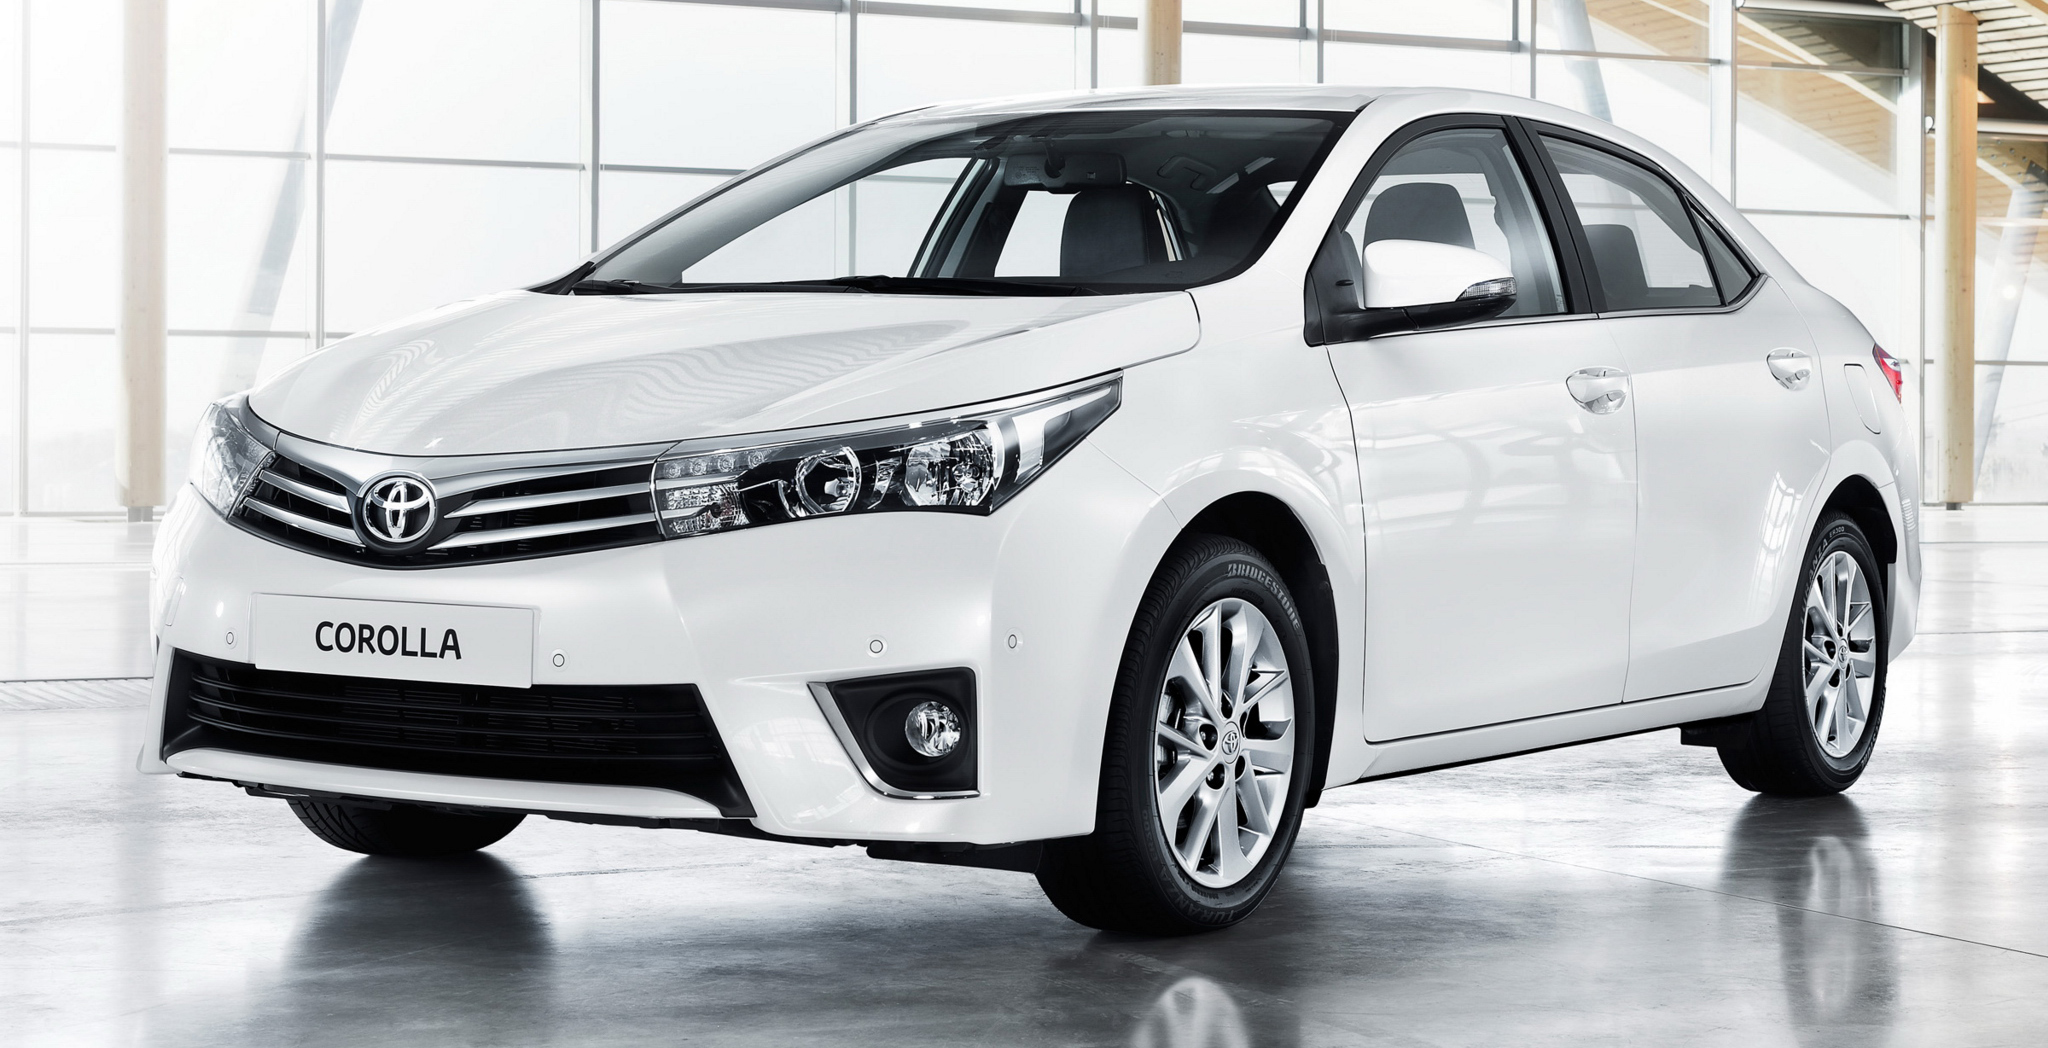 2014 toyota corolla will this be the asean car image 179407